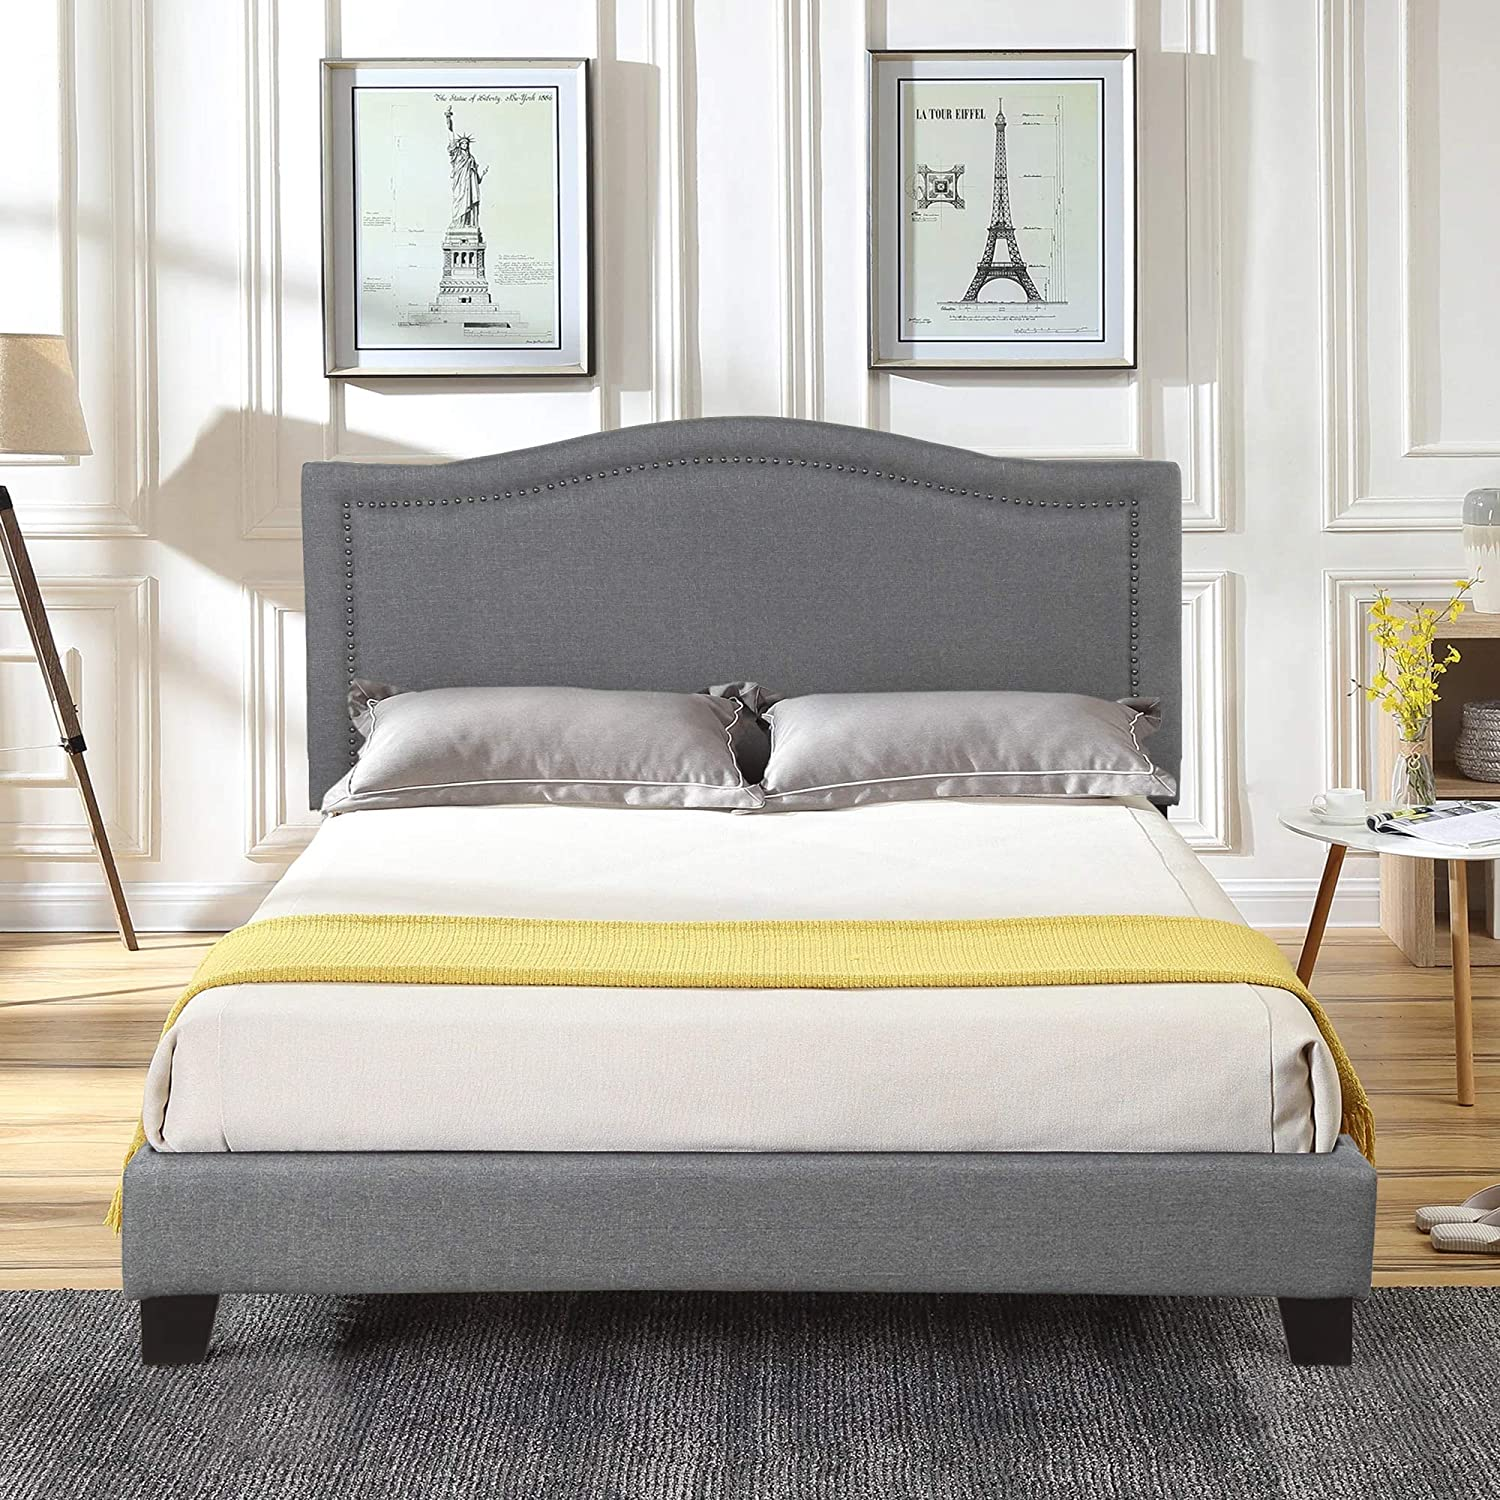 FLIEKS Upholstered Platform Bed Frame Mattress Foundation with Wooden Slat Support and Diamond Button Tufted Headboard Grey, Queen